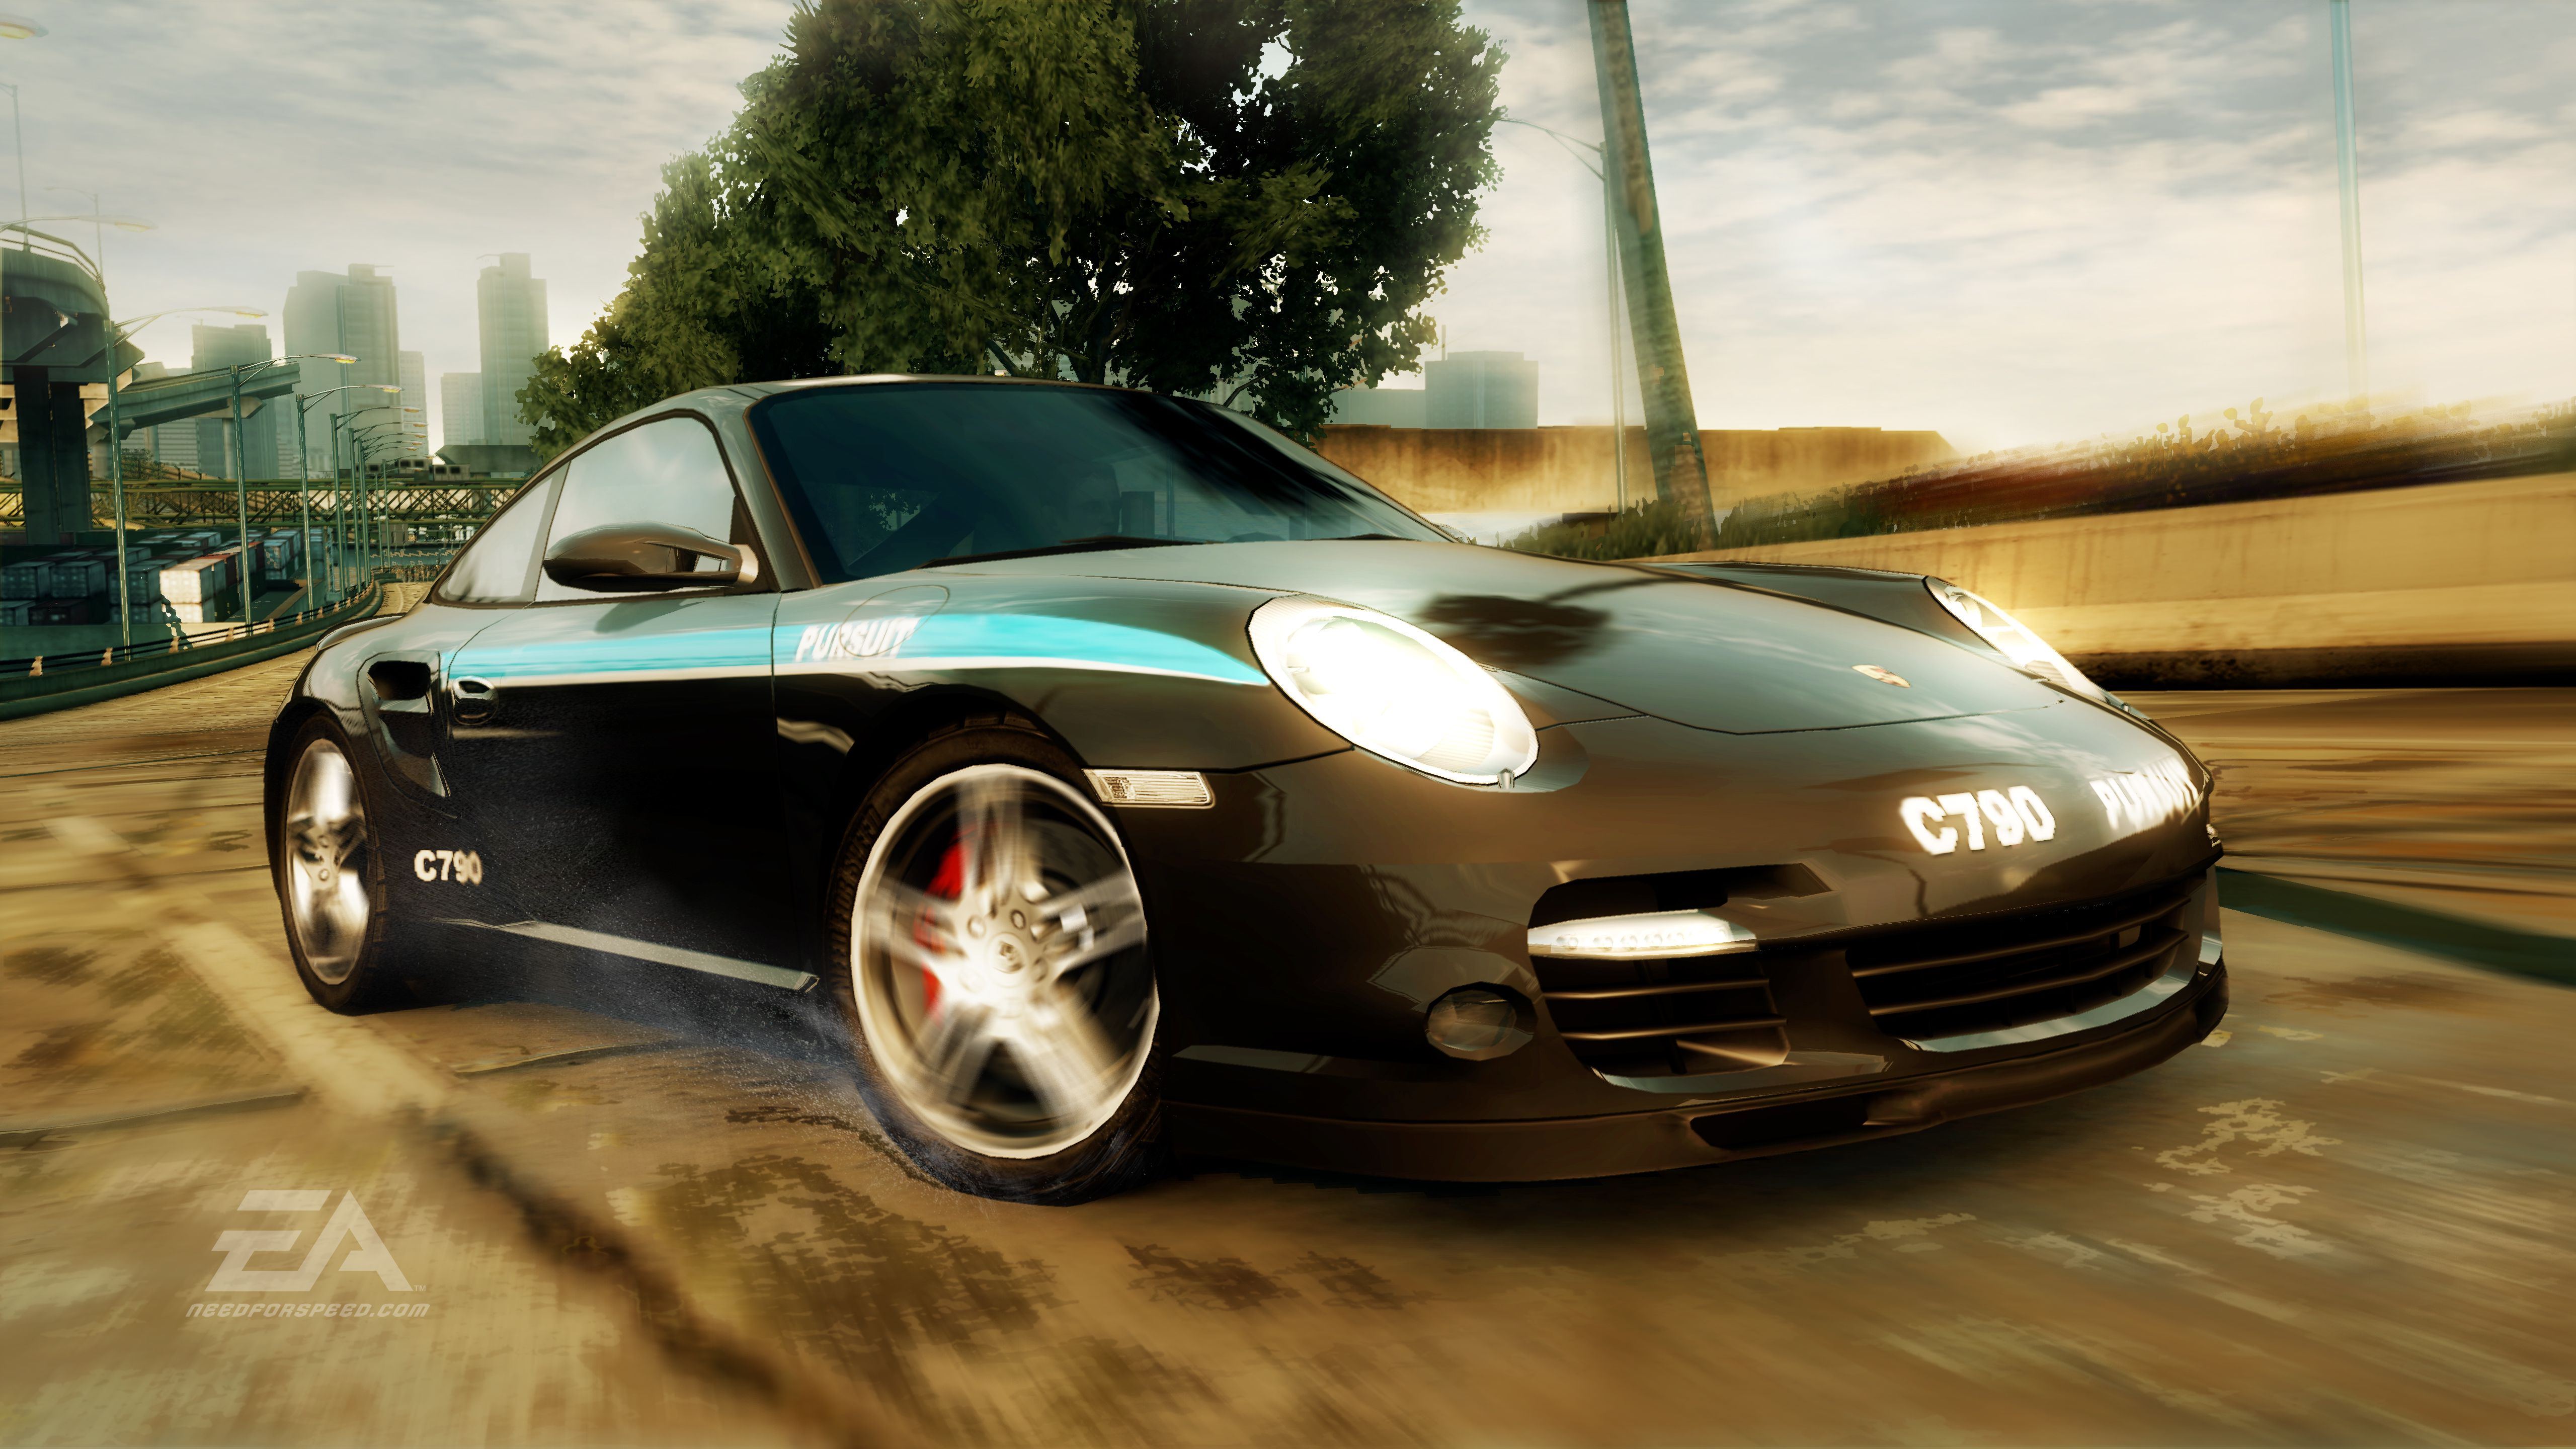 nfs undercover download free full version - HD5120×2880